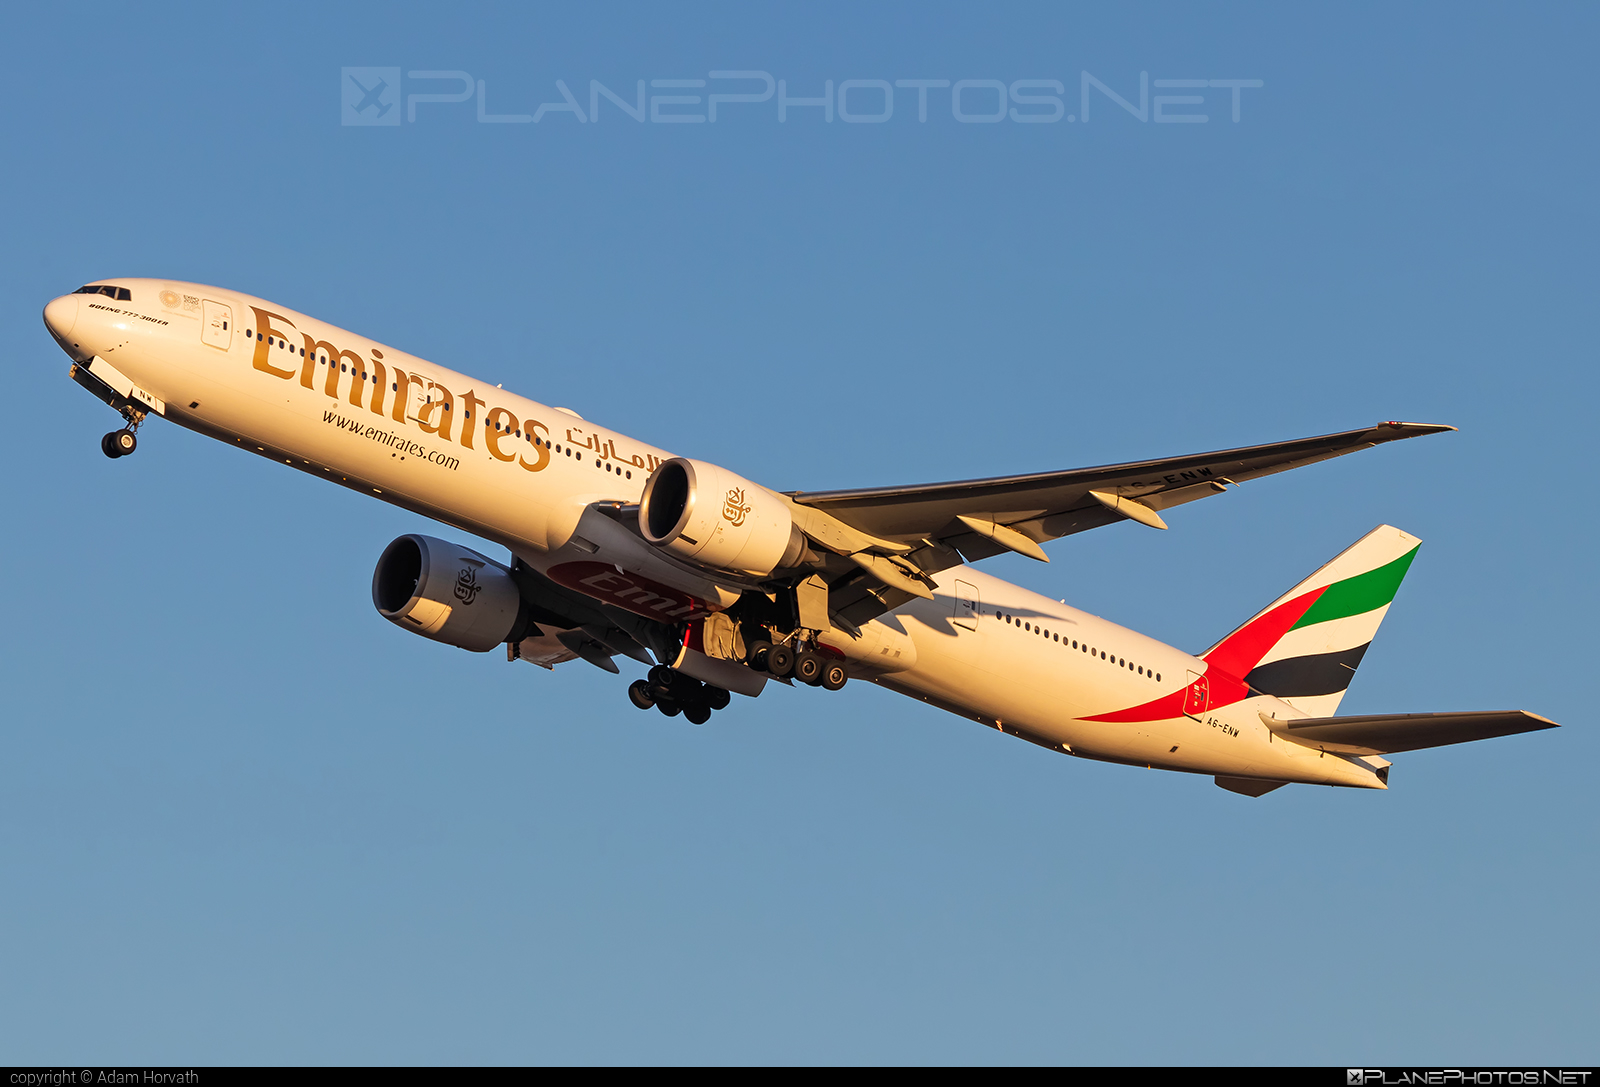 Boeing 777-300ER - A6-ENW operated by Emirates #b777 #b777er #boeing #boeing777 #emirates #tripleseven